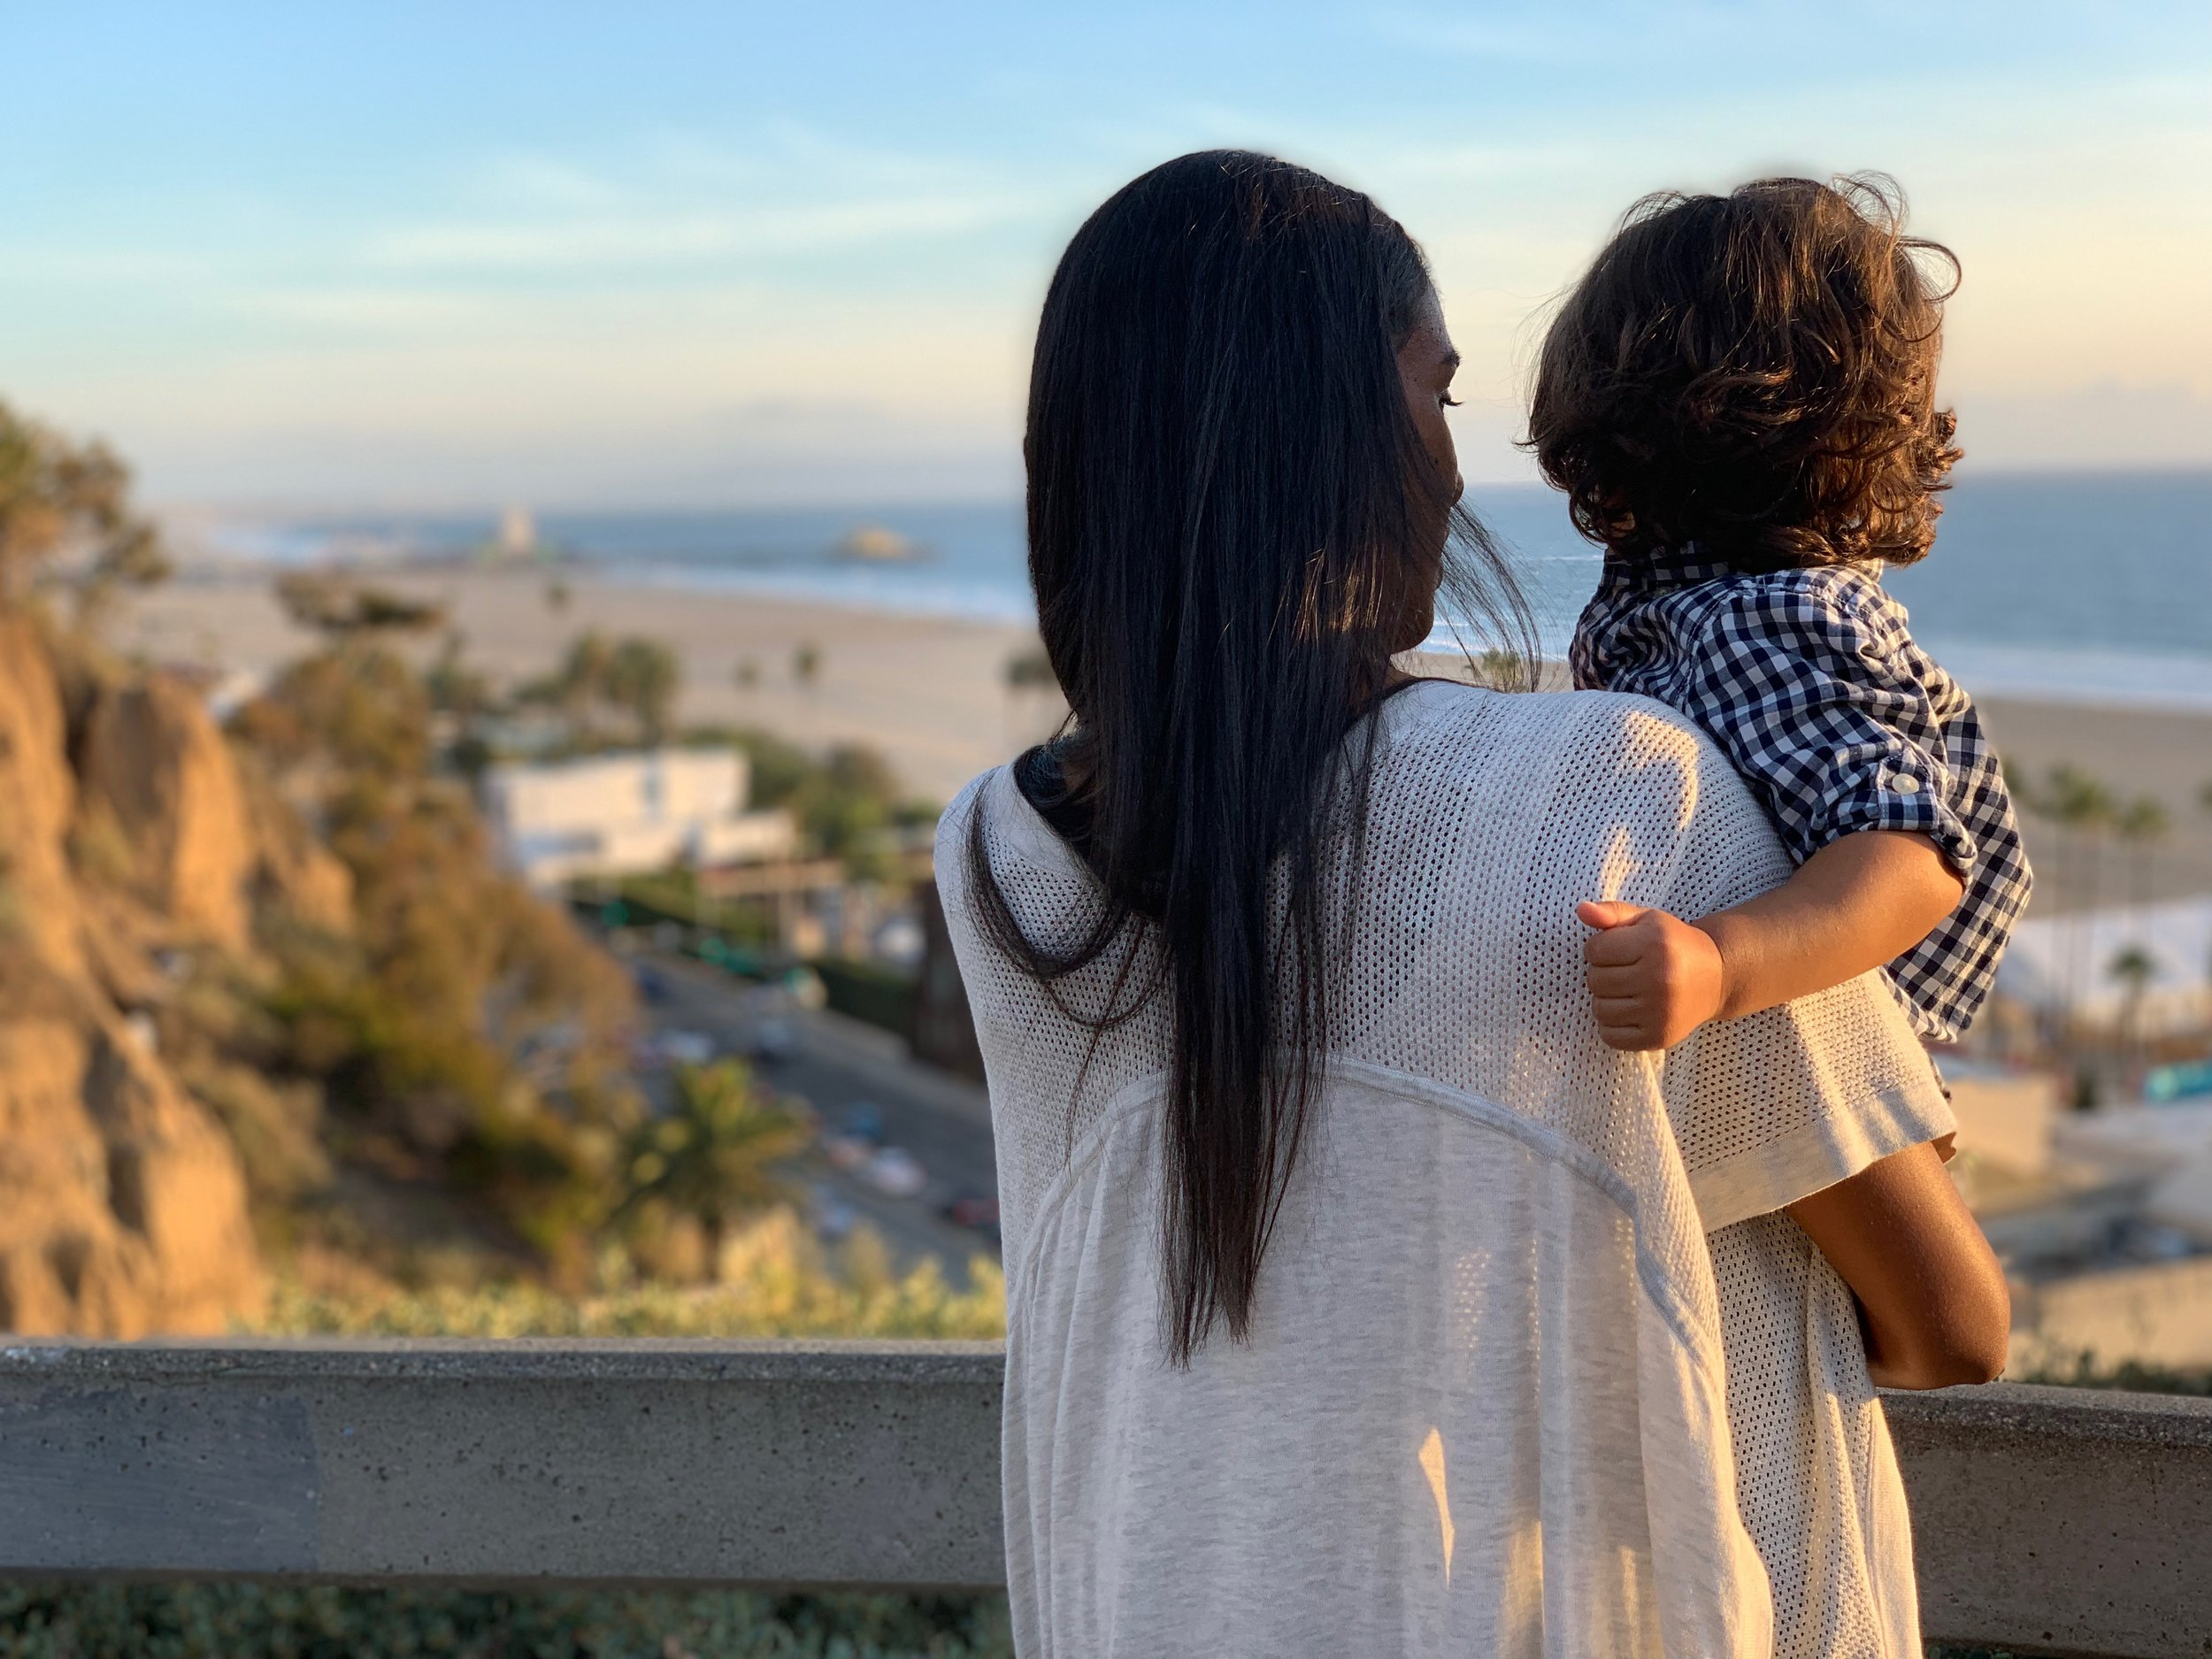 Woman holding baby and looking out at view